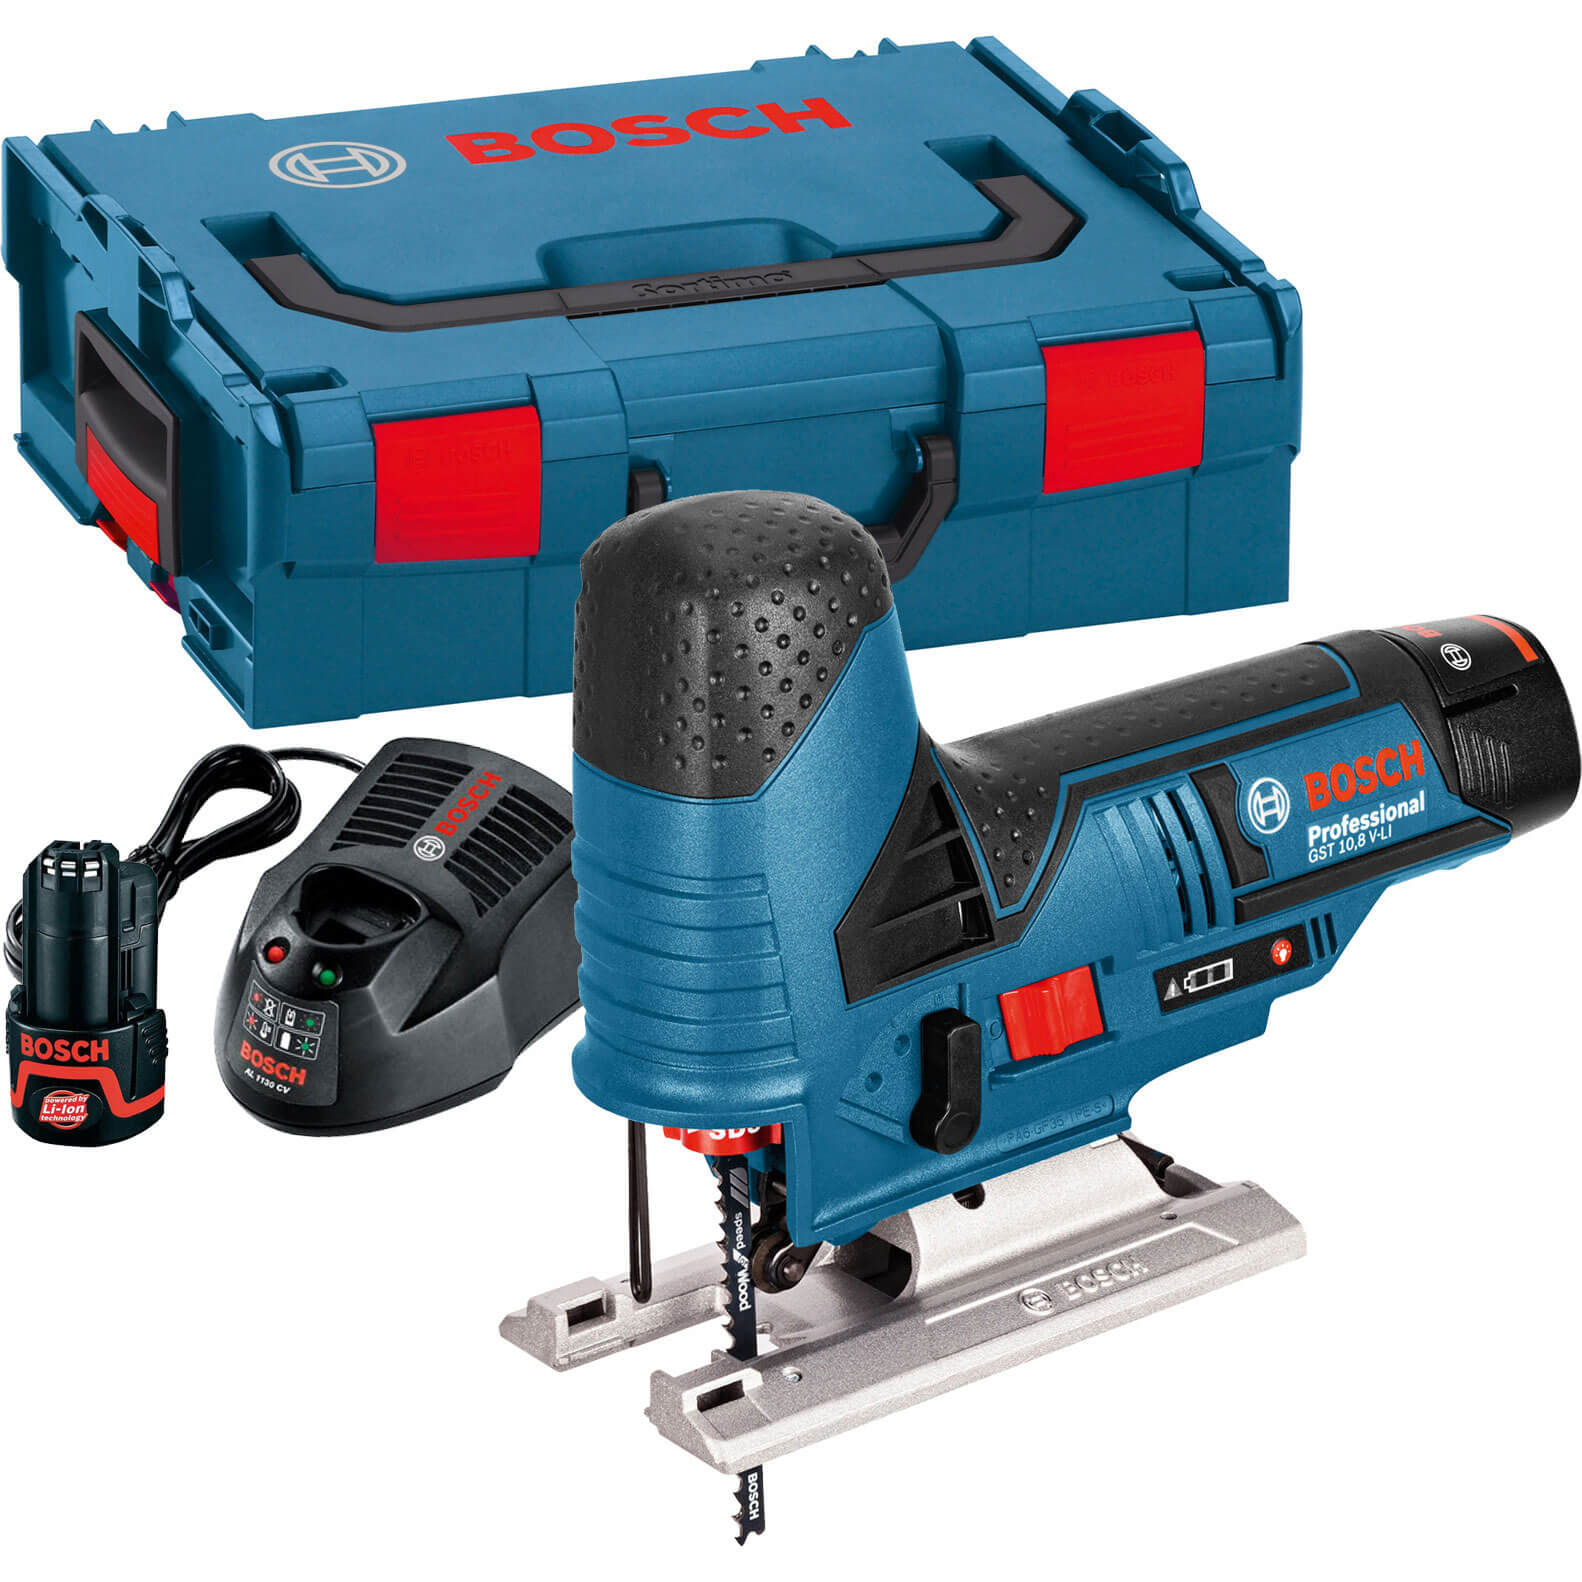 Bosch jigsaw shop for cheap hand tools and save online - Bosch 10 8 v ...